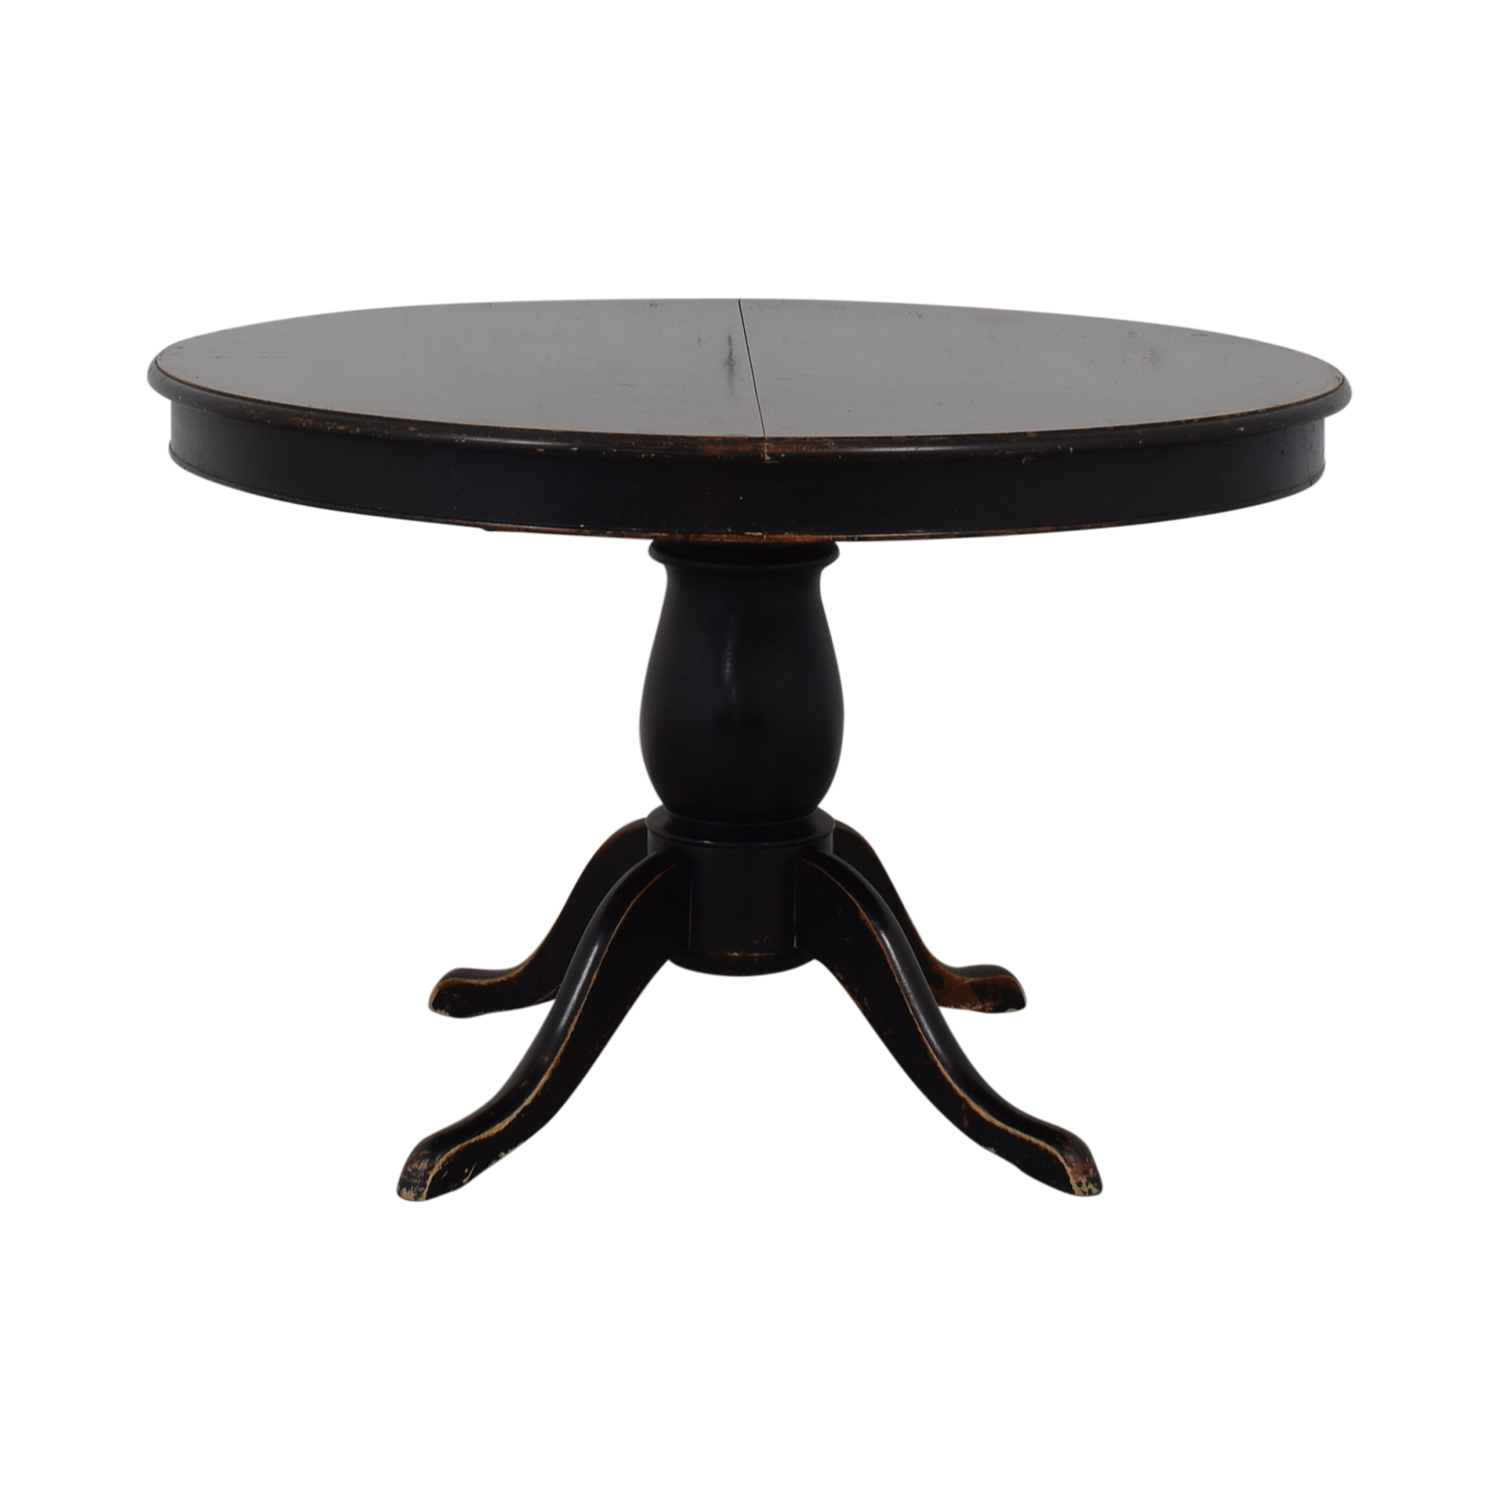 shop Crate & Barrel Avalon Round Extendable Dining Table Crate & Barrel